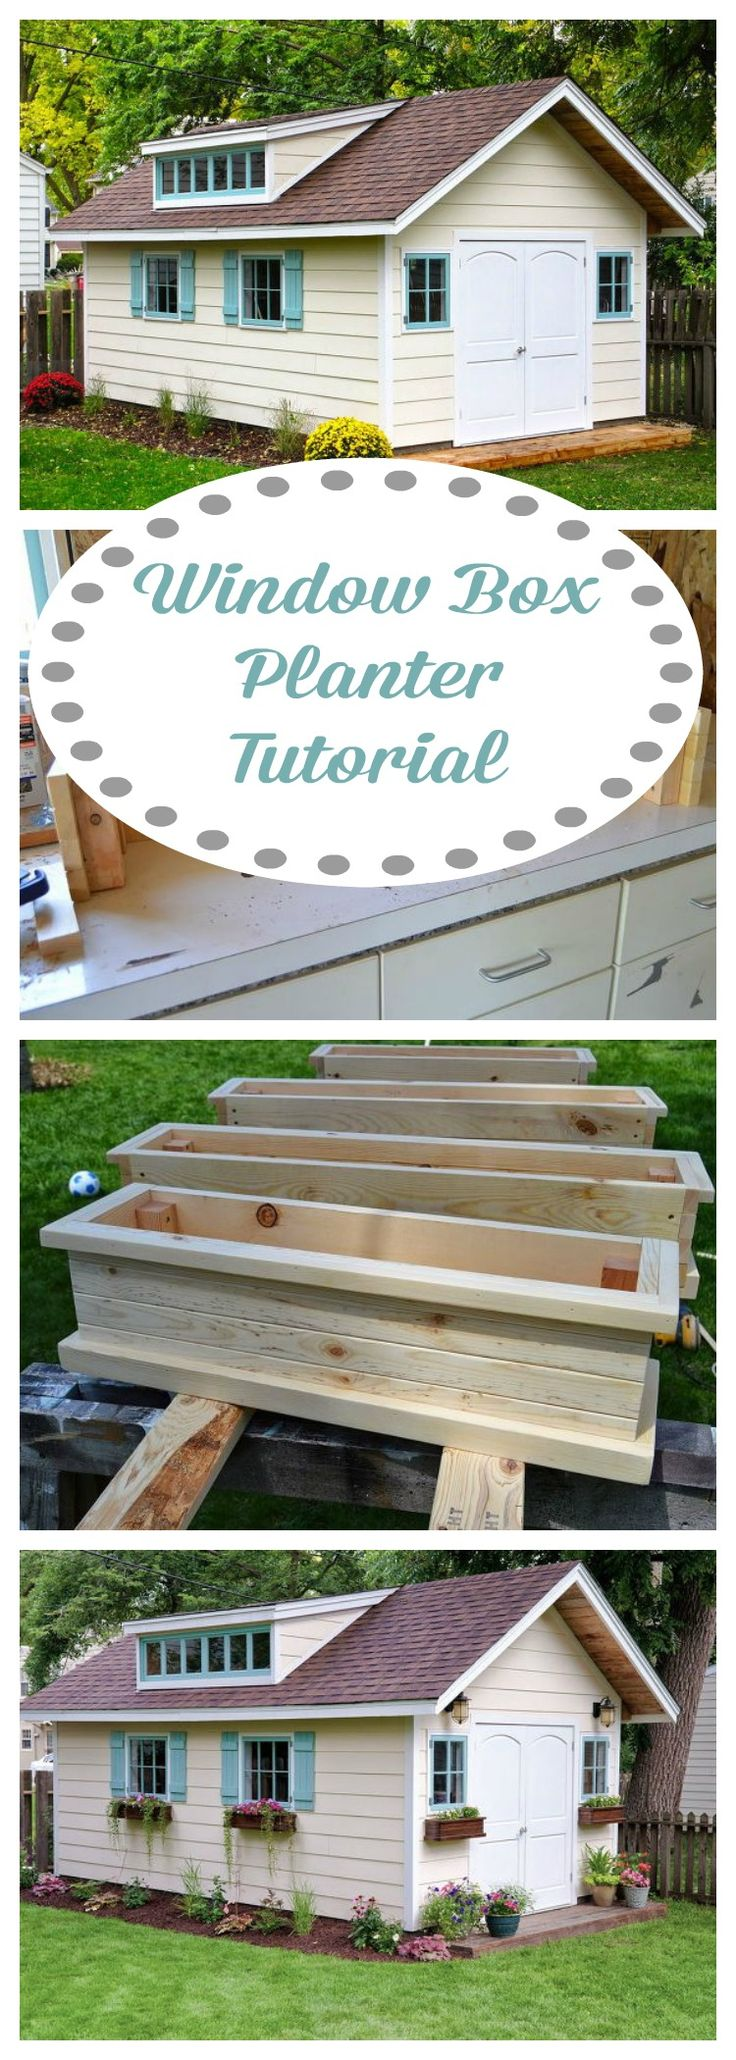 Easy to follow window box planter tutorial ~ the charm they added to this shed is amazing!